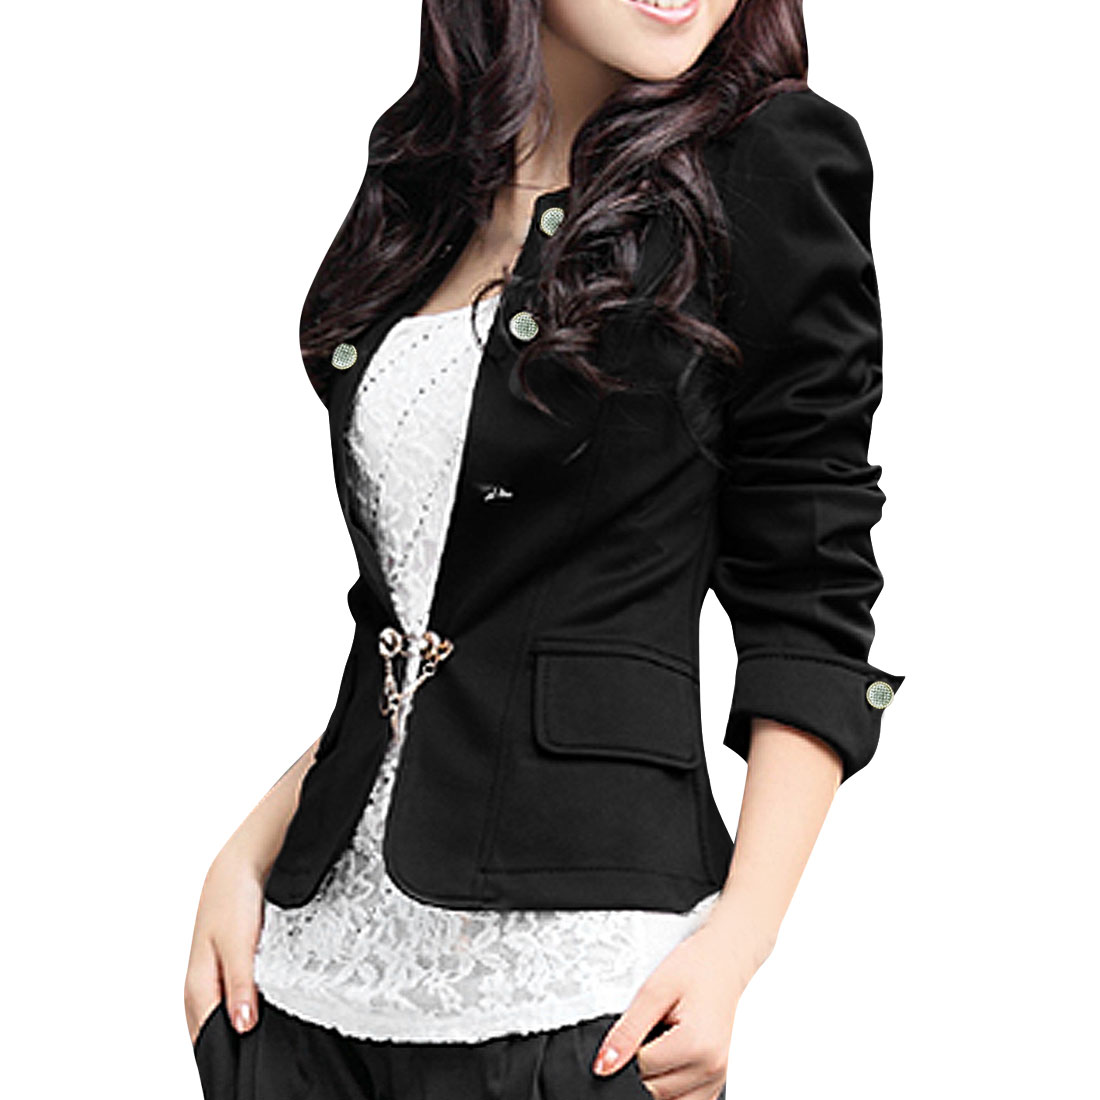 Allegra K Women's Long Sleeve Button Decor Ruffled Peplum Blazer Jacket Black (Size M / 8)